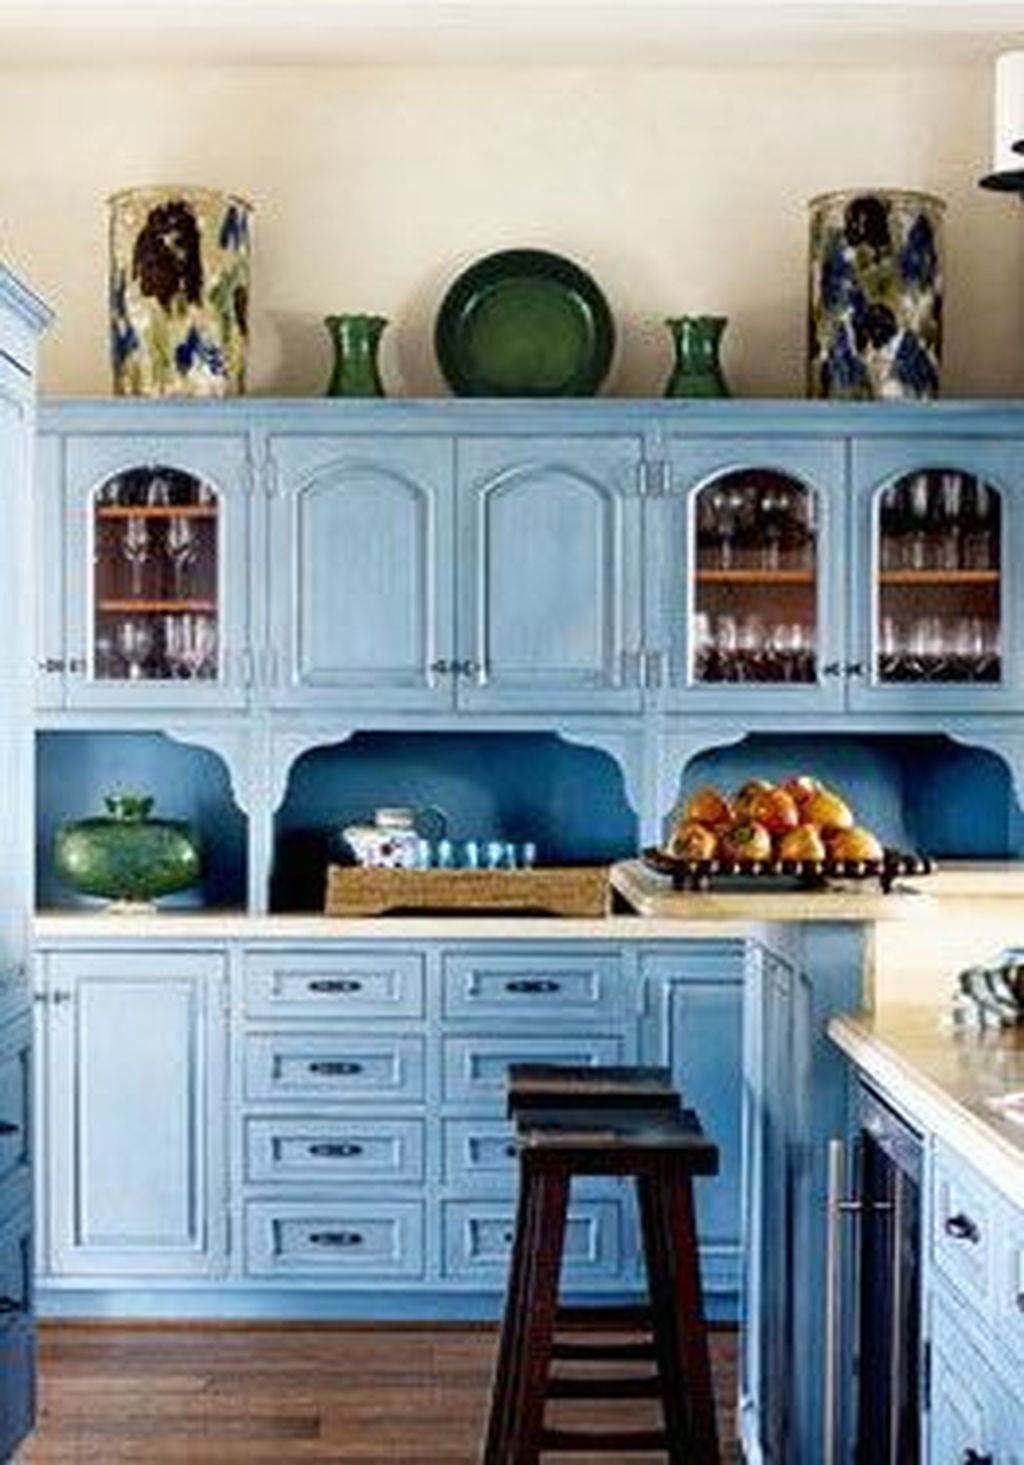 Adorable Rainbow Colorful Kitchens Design Ideas To Looks More Awesome 22